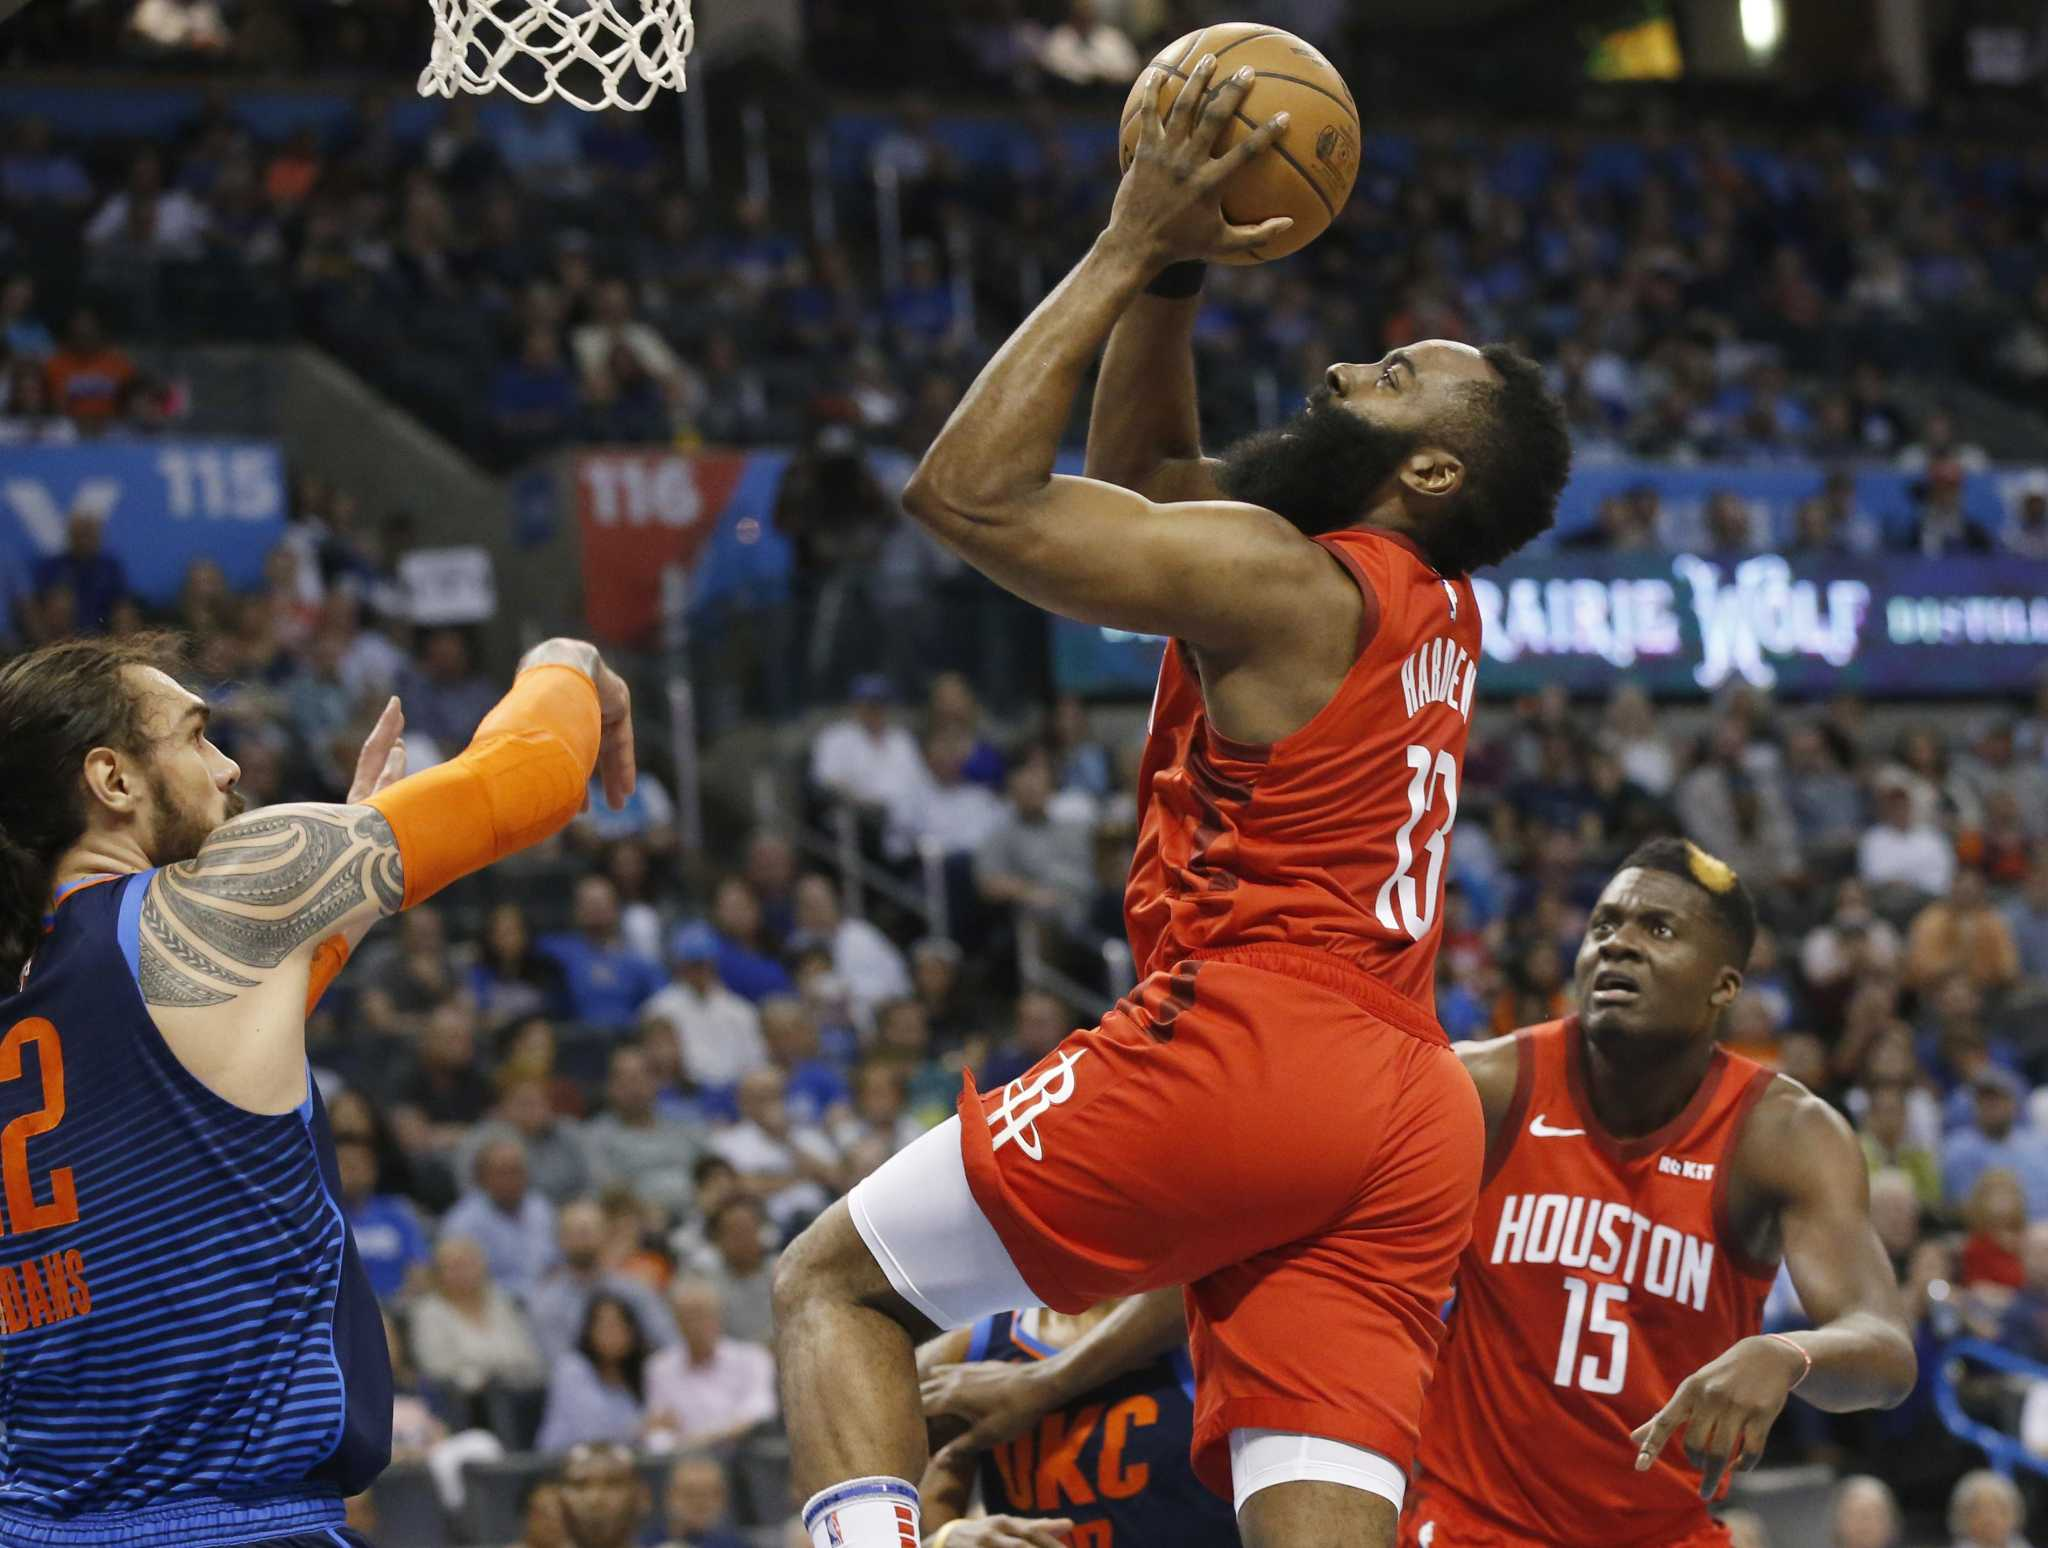 c6a4f0f0193f Rockets lose to Thunder in final seconds to allow No. 2 seed to slip from  grasp